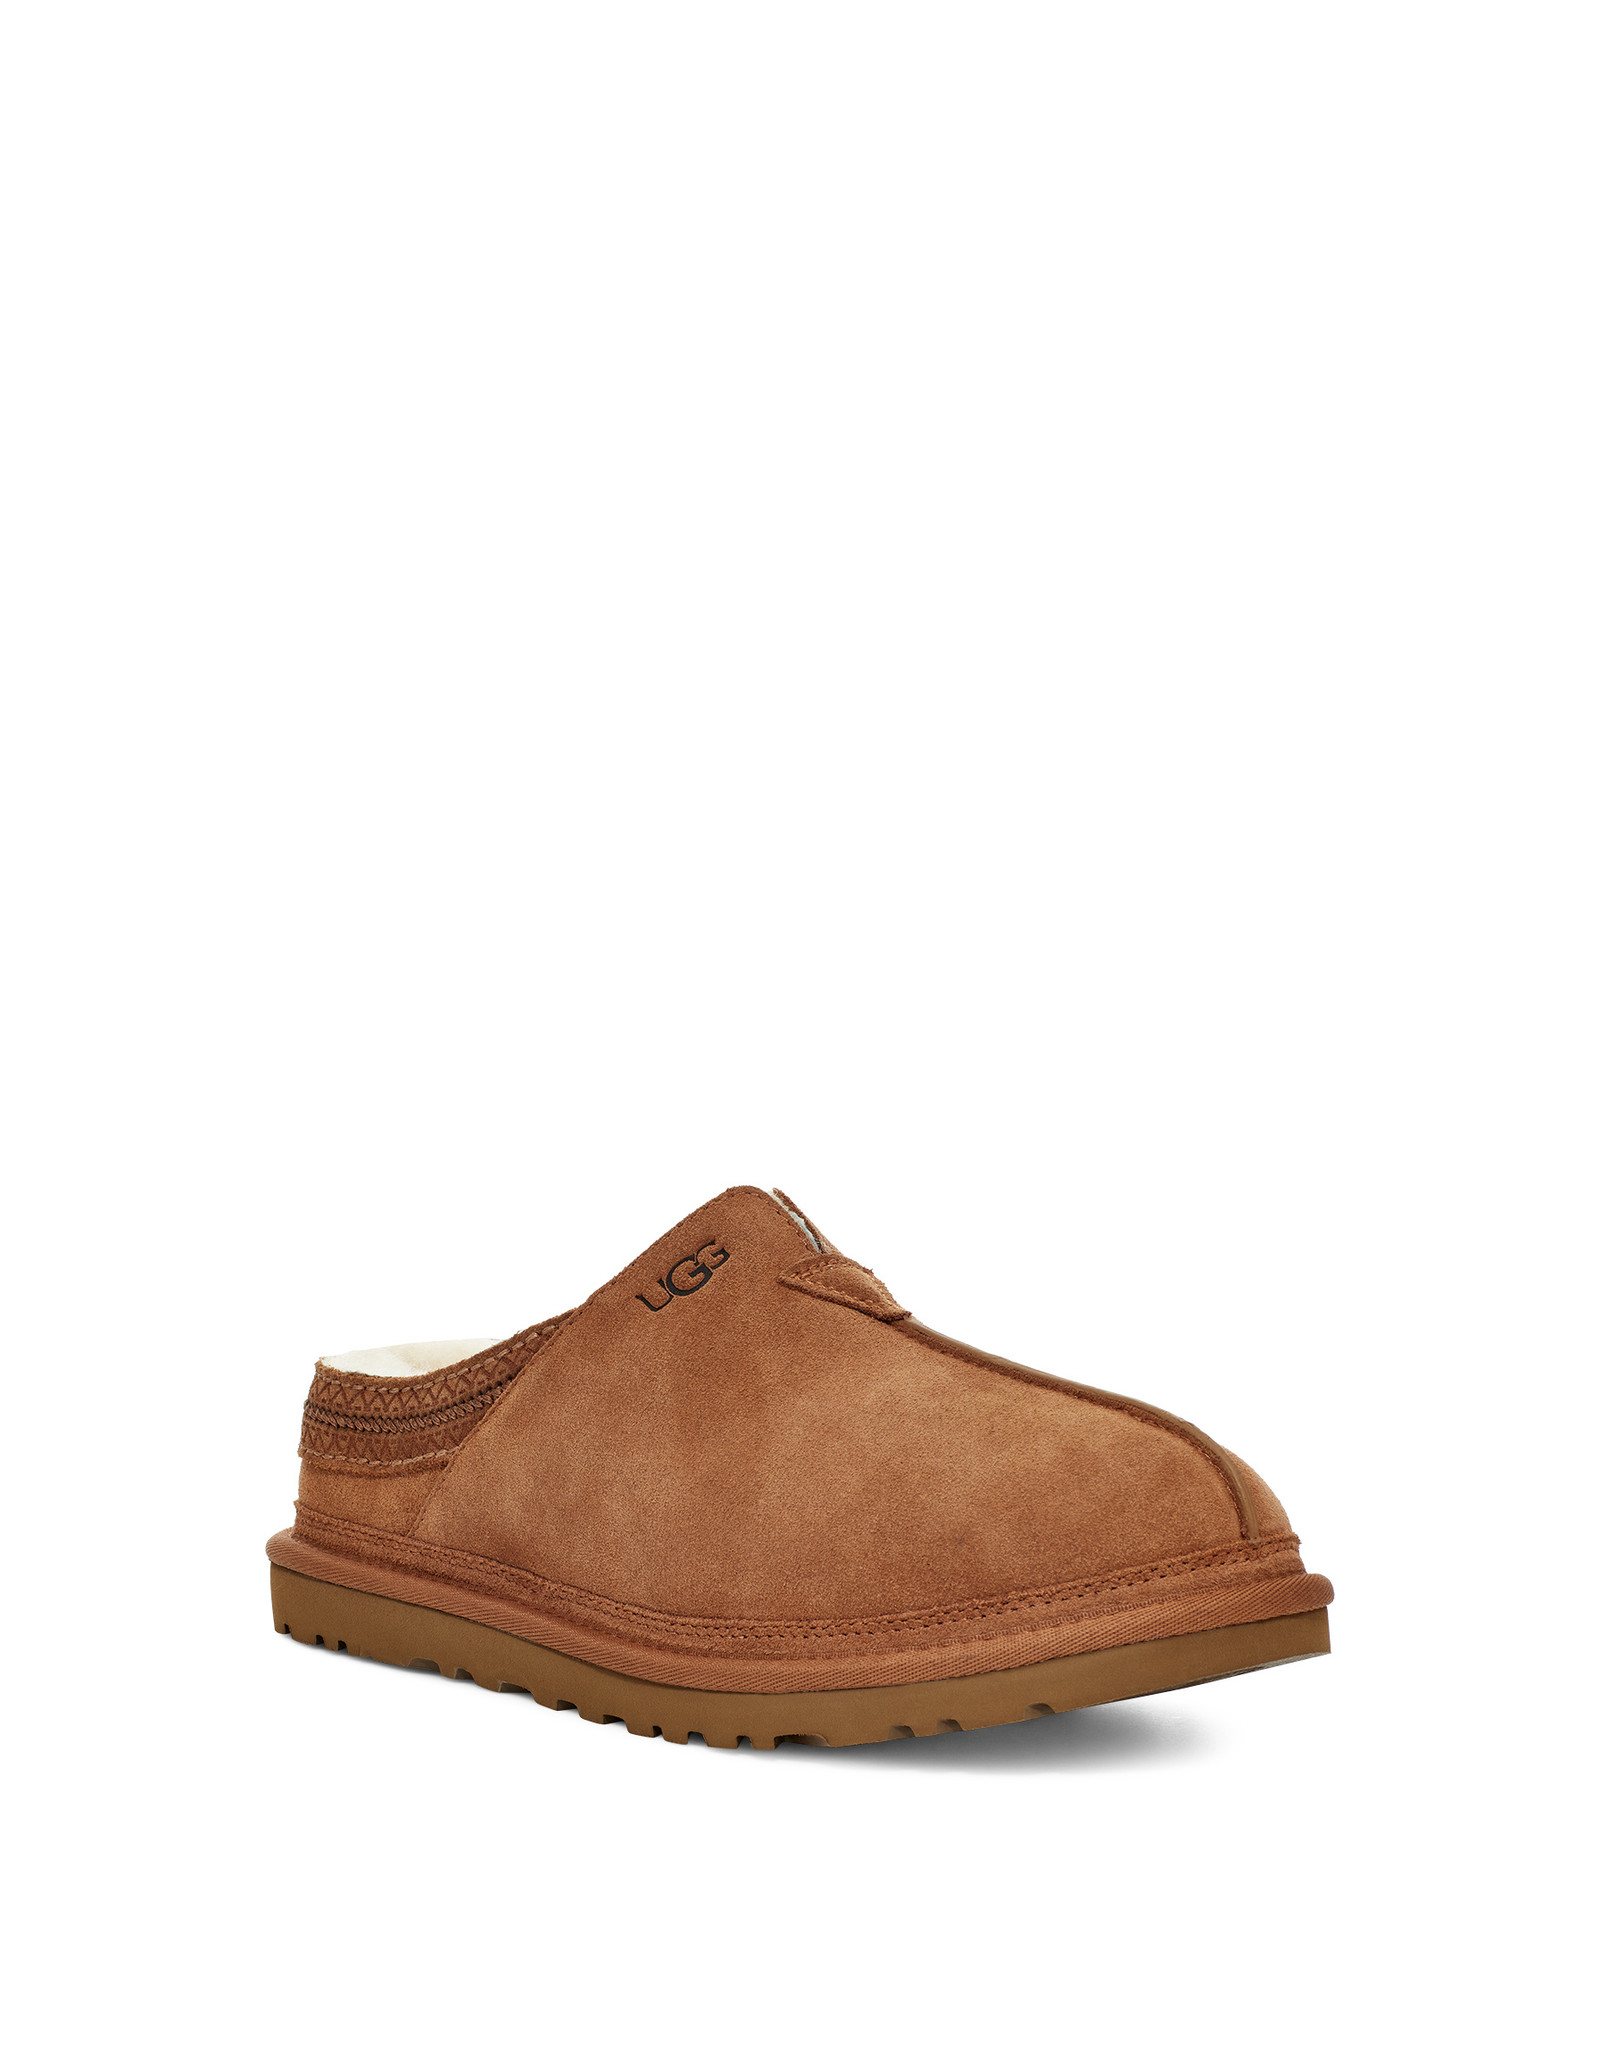 UGG MEN'S NEUMAN SLIPPER-CHESTNUT